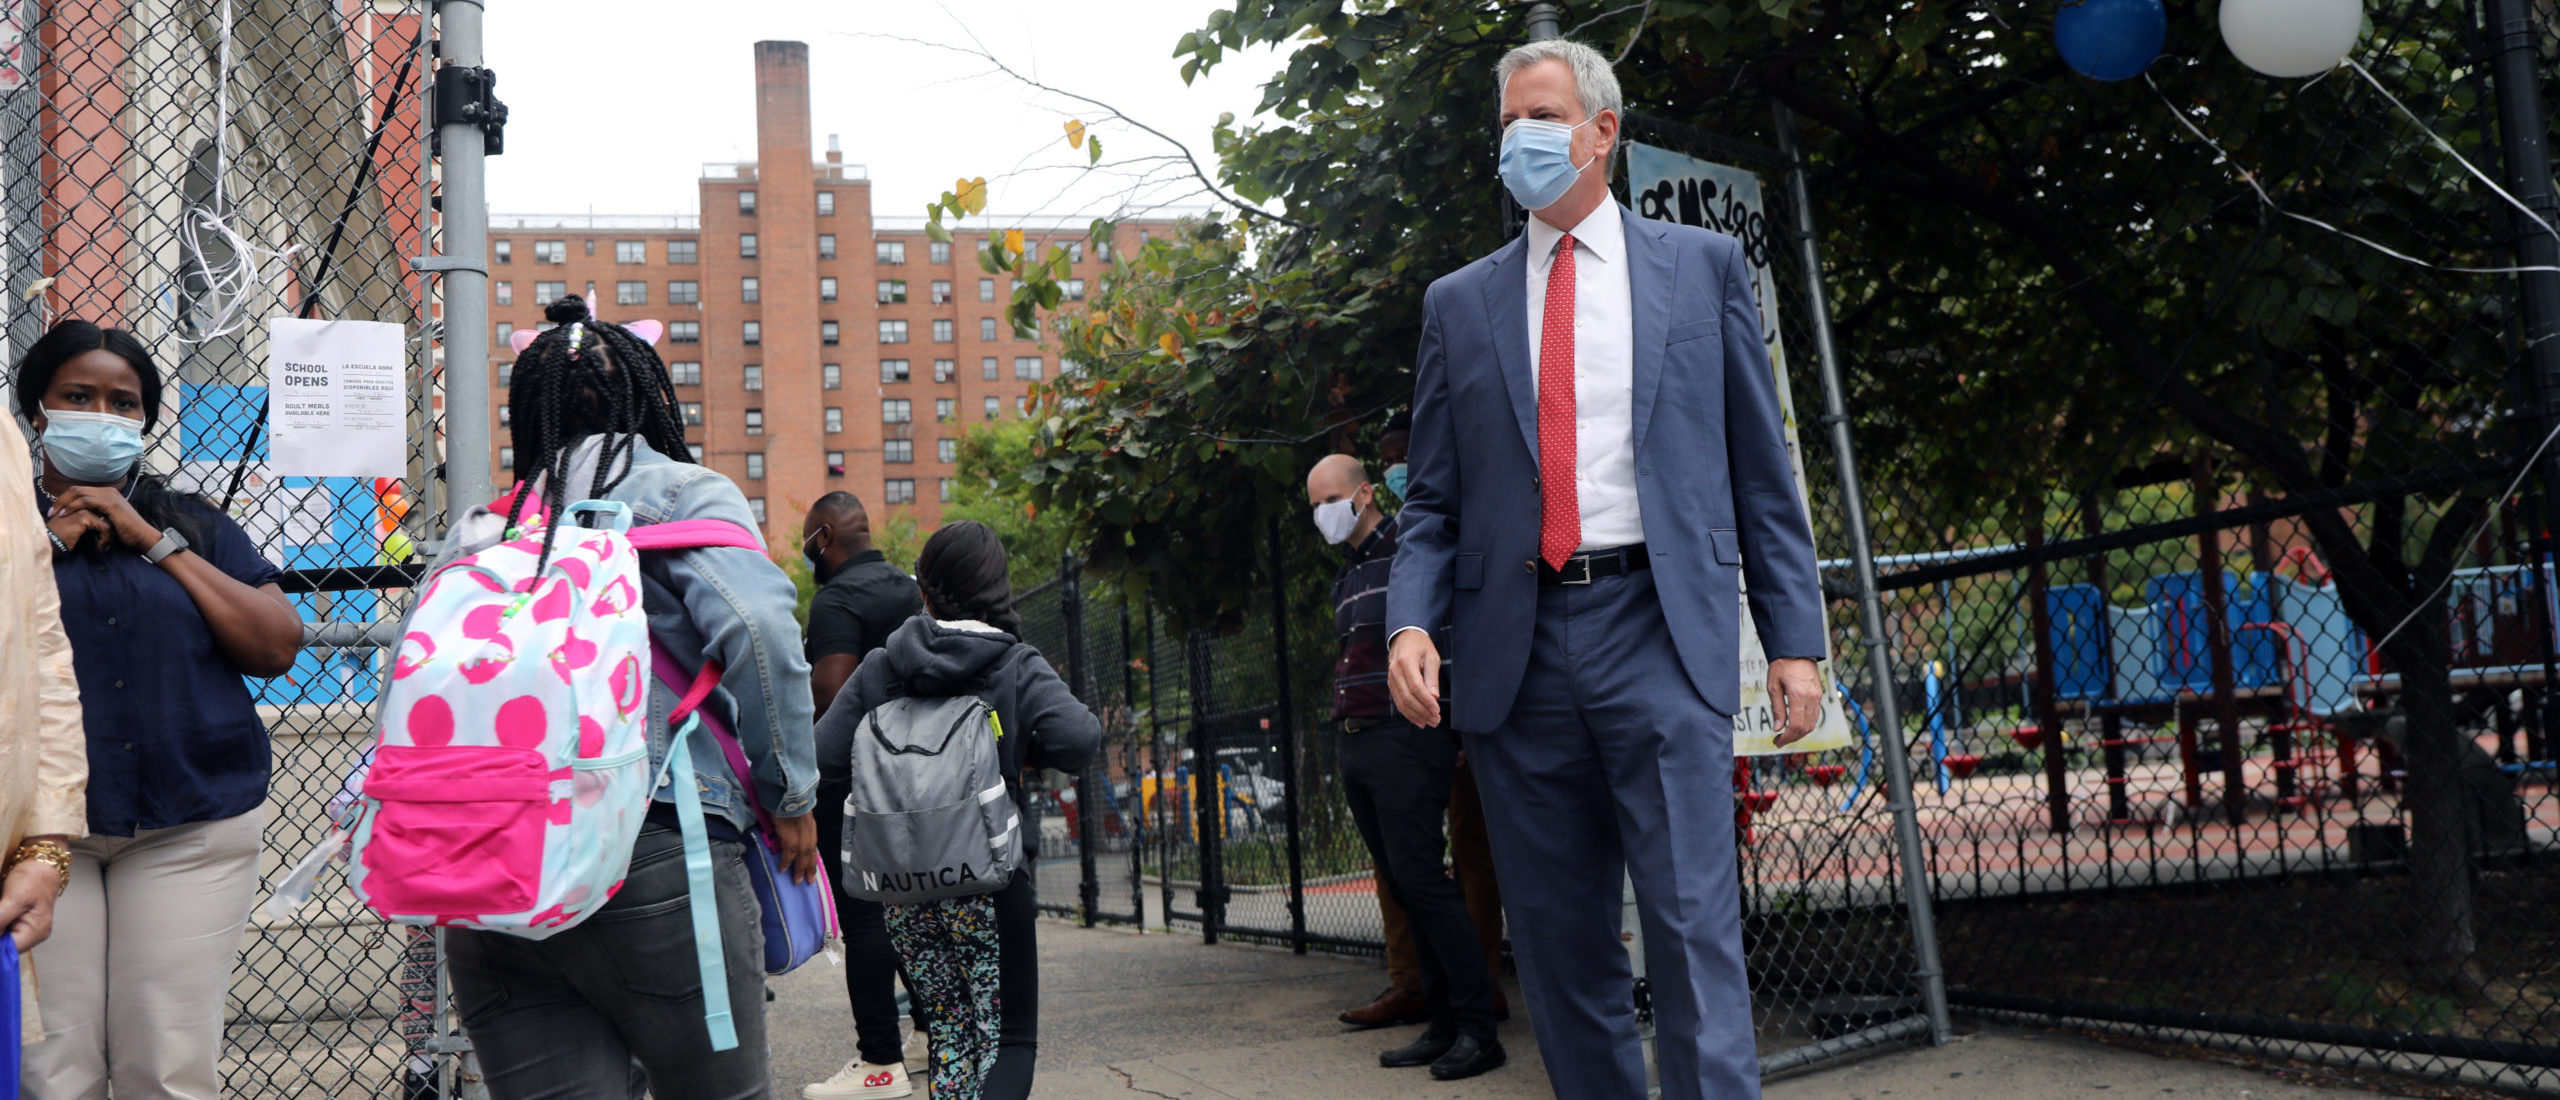 NEW YORK, NEW YORK - SEPTEMBER 29: New York City Mayor Bill de Blasio stands at P.S. 188 as he welcomes elementary school students back to the city's public schools for in-person learning on September 29, 2020 in New York City. Middle and high schoolers will start on Oct. 1 while Pre-K students and students with disabilities could return to school starting on Sept. 21. On Sunday, the executive board of the union representing more than 6,400 of New York City's school leaders passed a unanimous vote of no confidence against Mayor Bill de Blasio and Schools Chancellor Richard Carranza for what they called a failure to lead New York City through the safe and successful reopening of its schools. (Spencer Platt/Getty Images)